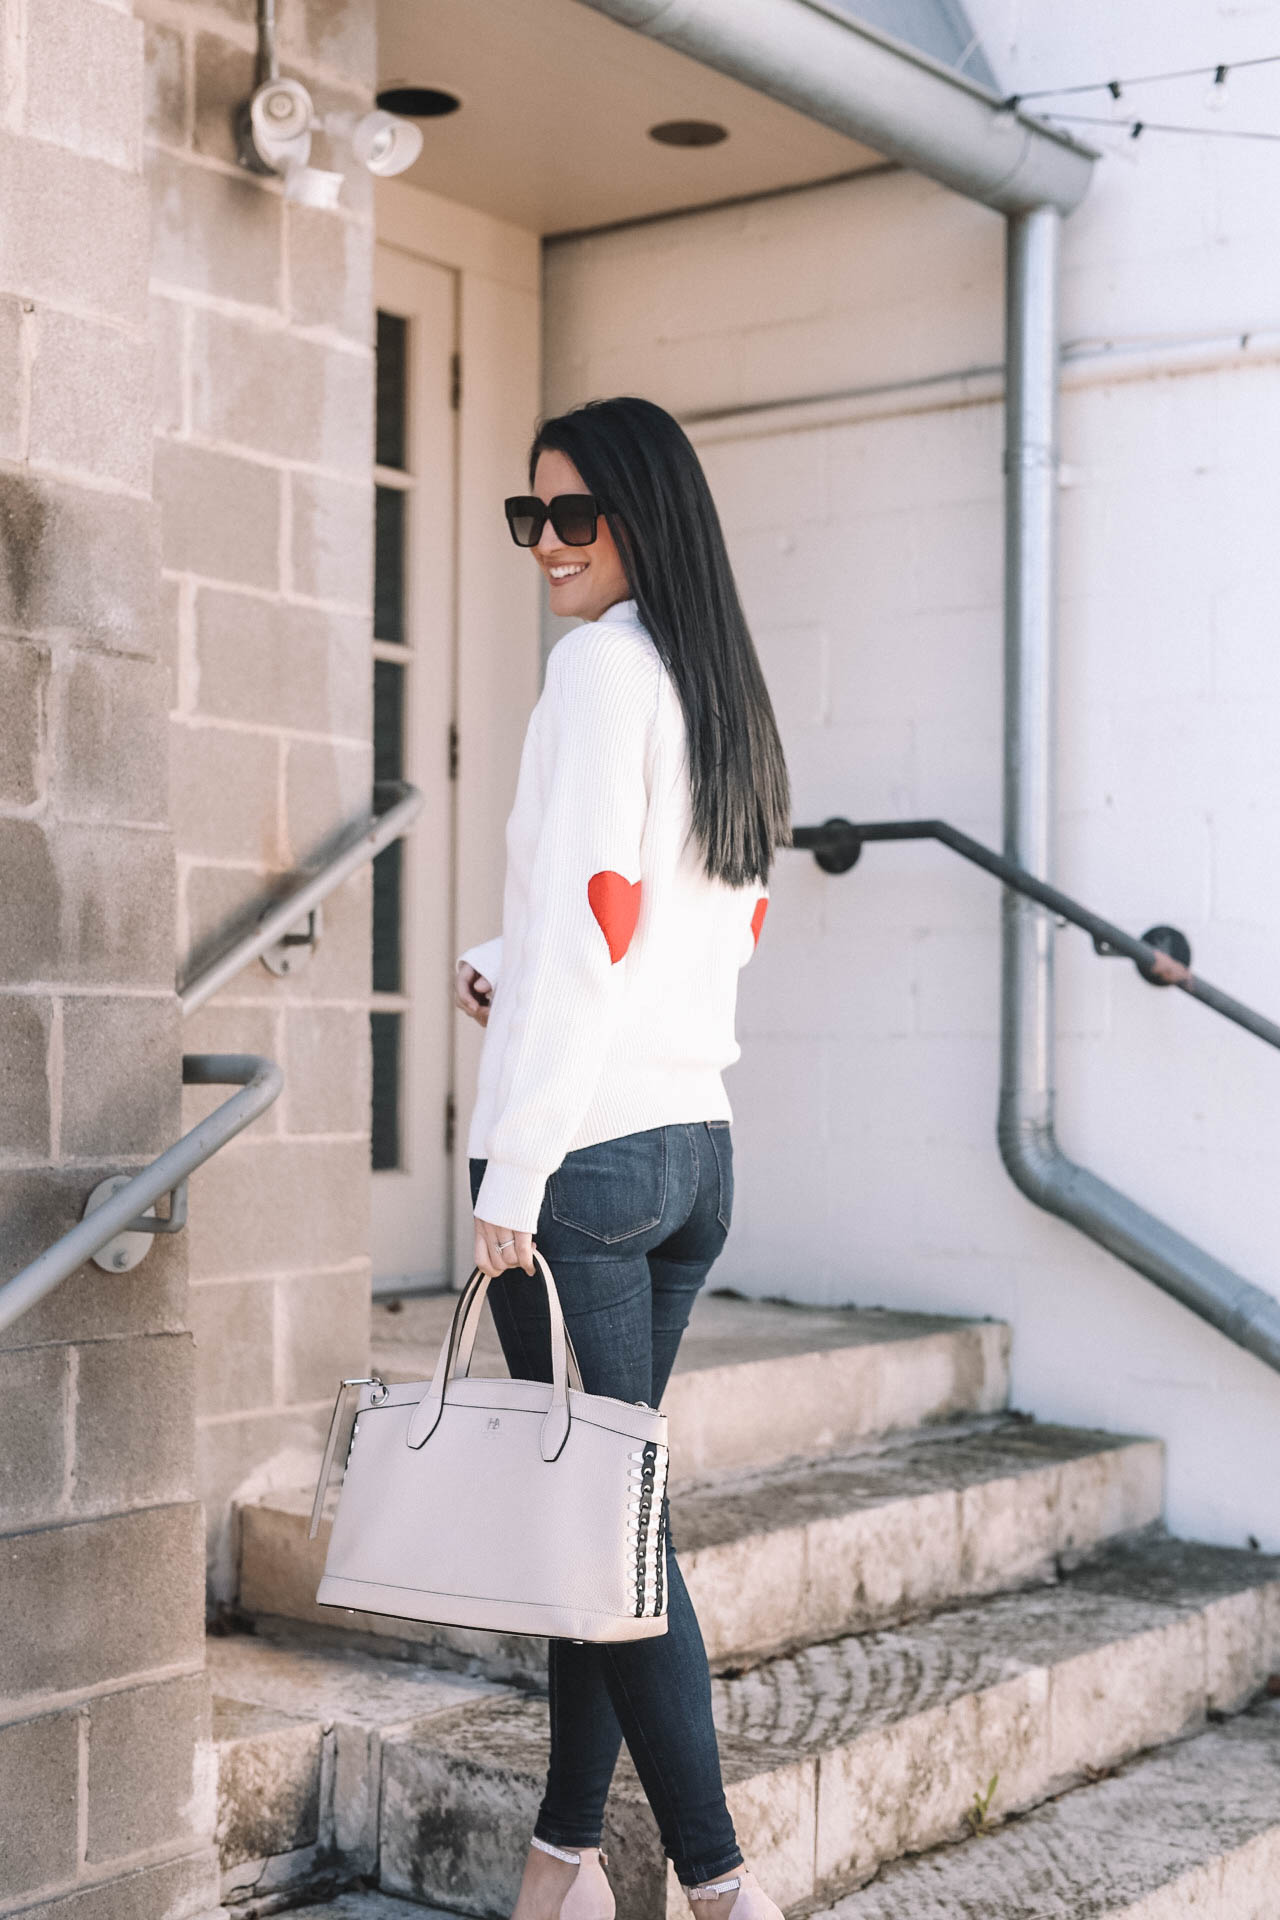 DTKAustin shares why she is dressing casual for Valentine's Day with this heart sleeve Chicwish turtleneck sweater. | Valentine's Day outfits | heart inspired outfits | Valentine's Day sweater | Valentine's Day outfit for women || Dressed to Kill #valentineoutfit #vdayoutfit #valentinesweater - Valentines Day Outfit idea from popular Austin Fashion blogger Dressed to Kill